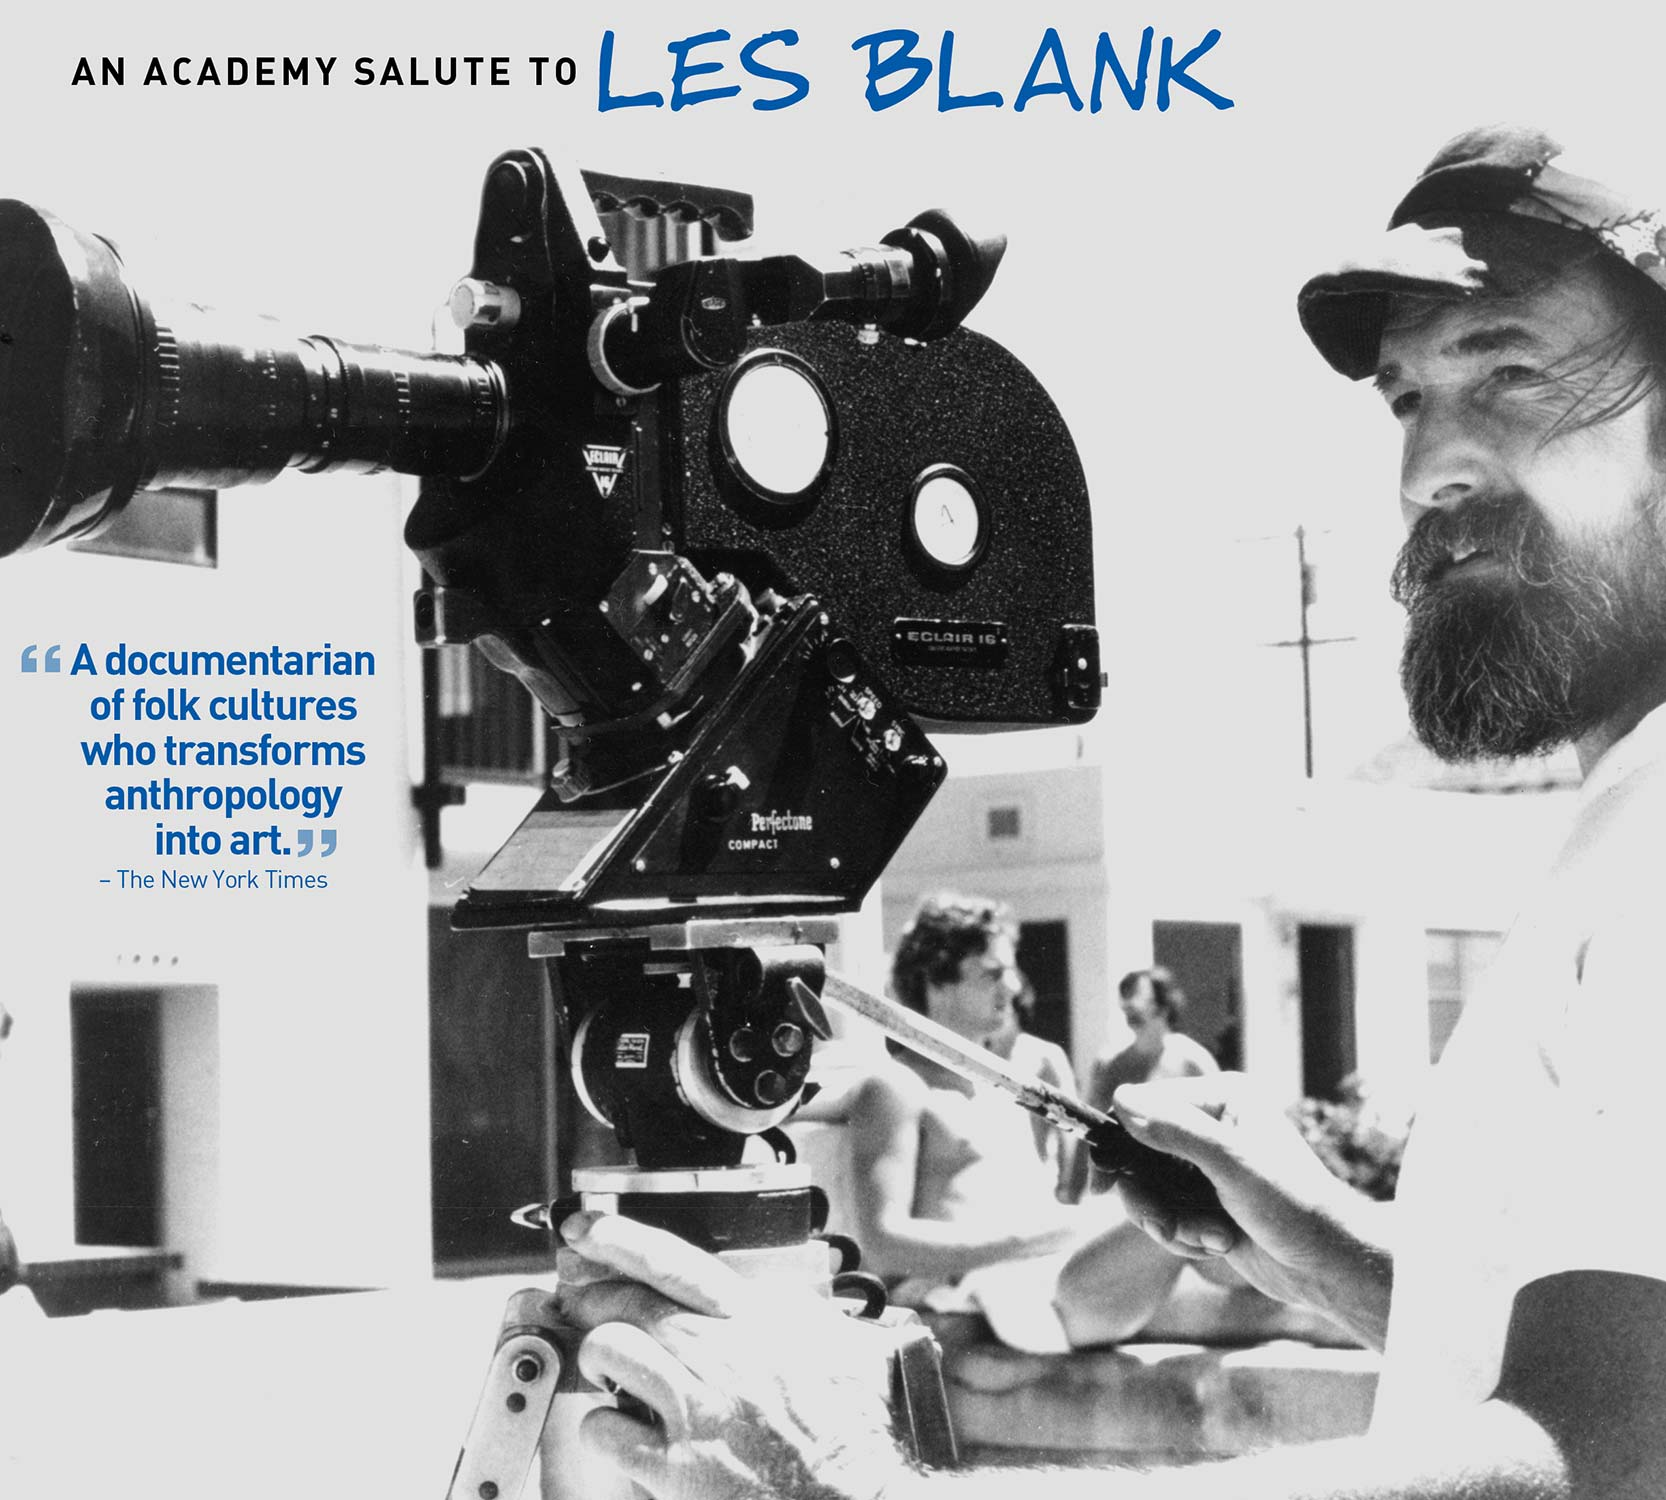 An Academy Salute to Les Blank poster.